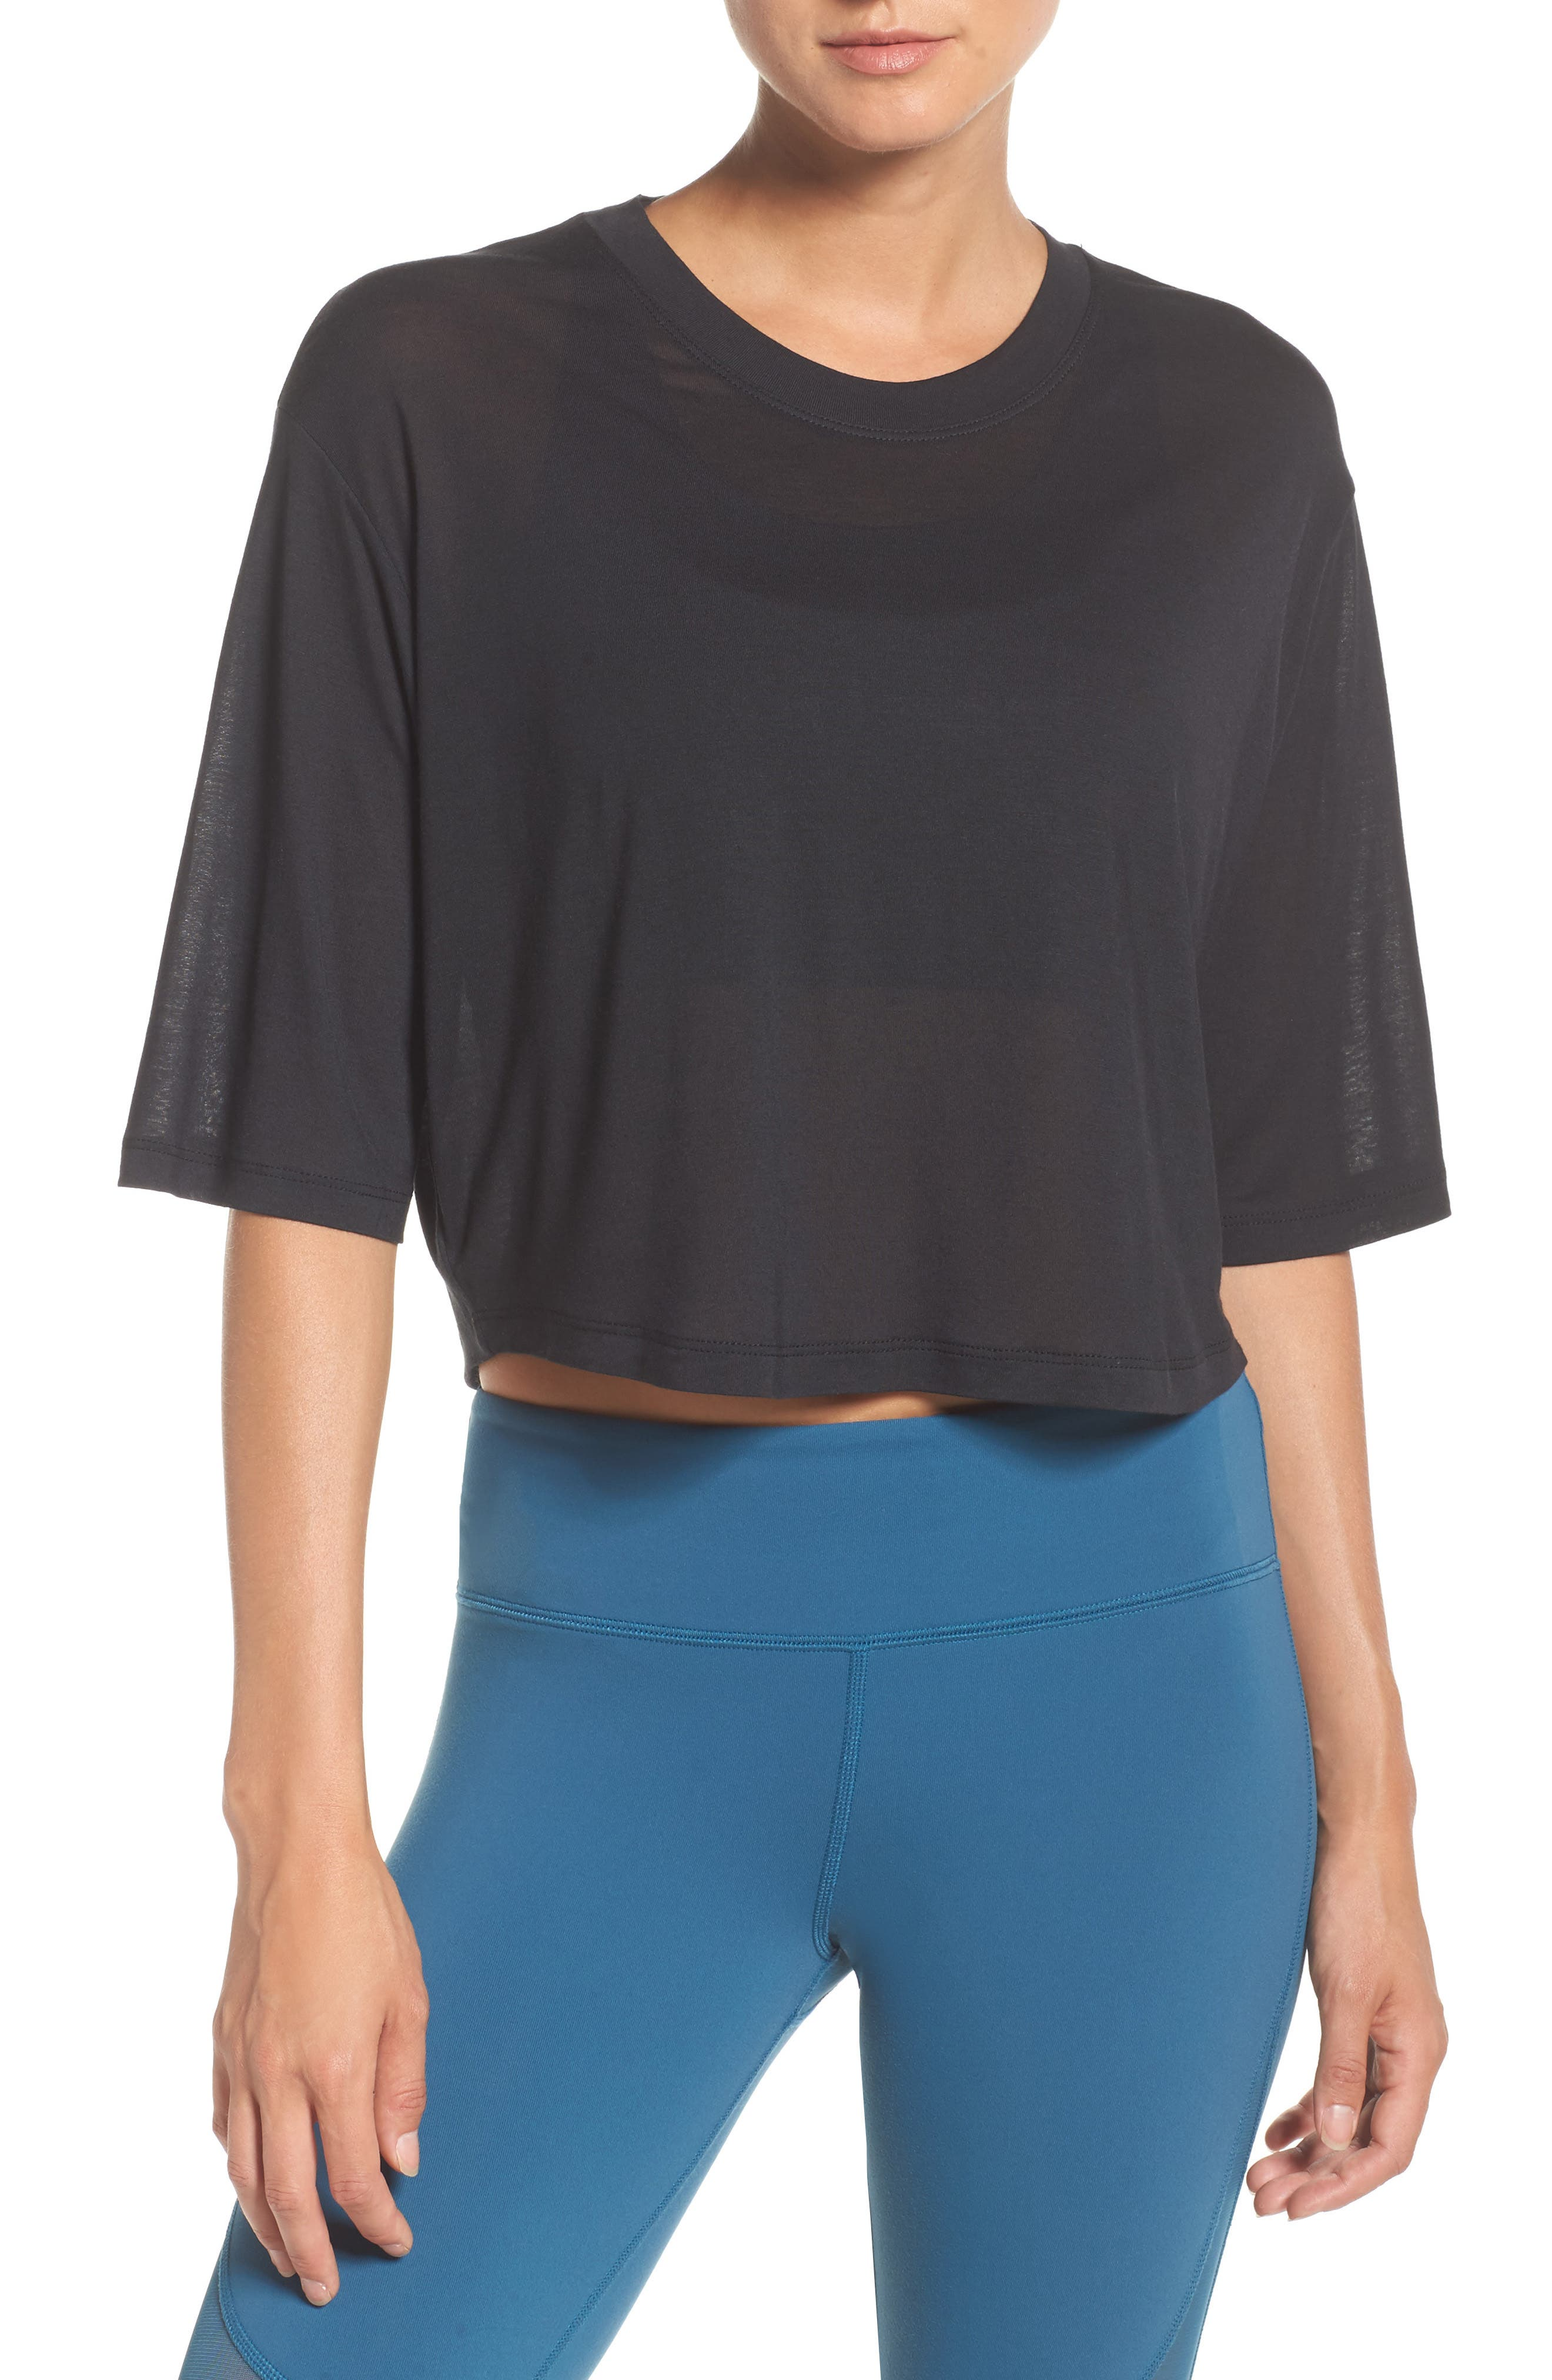 Verve Crop Top,                         Main,                         color, 001